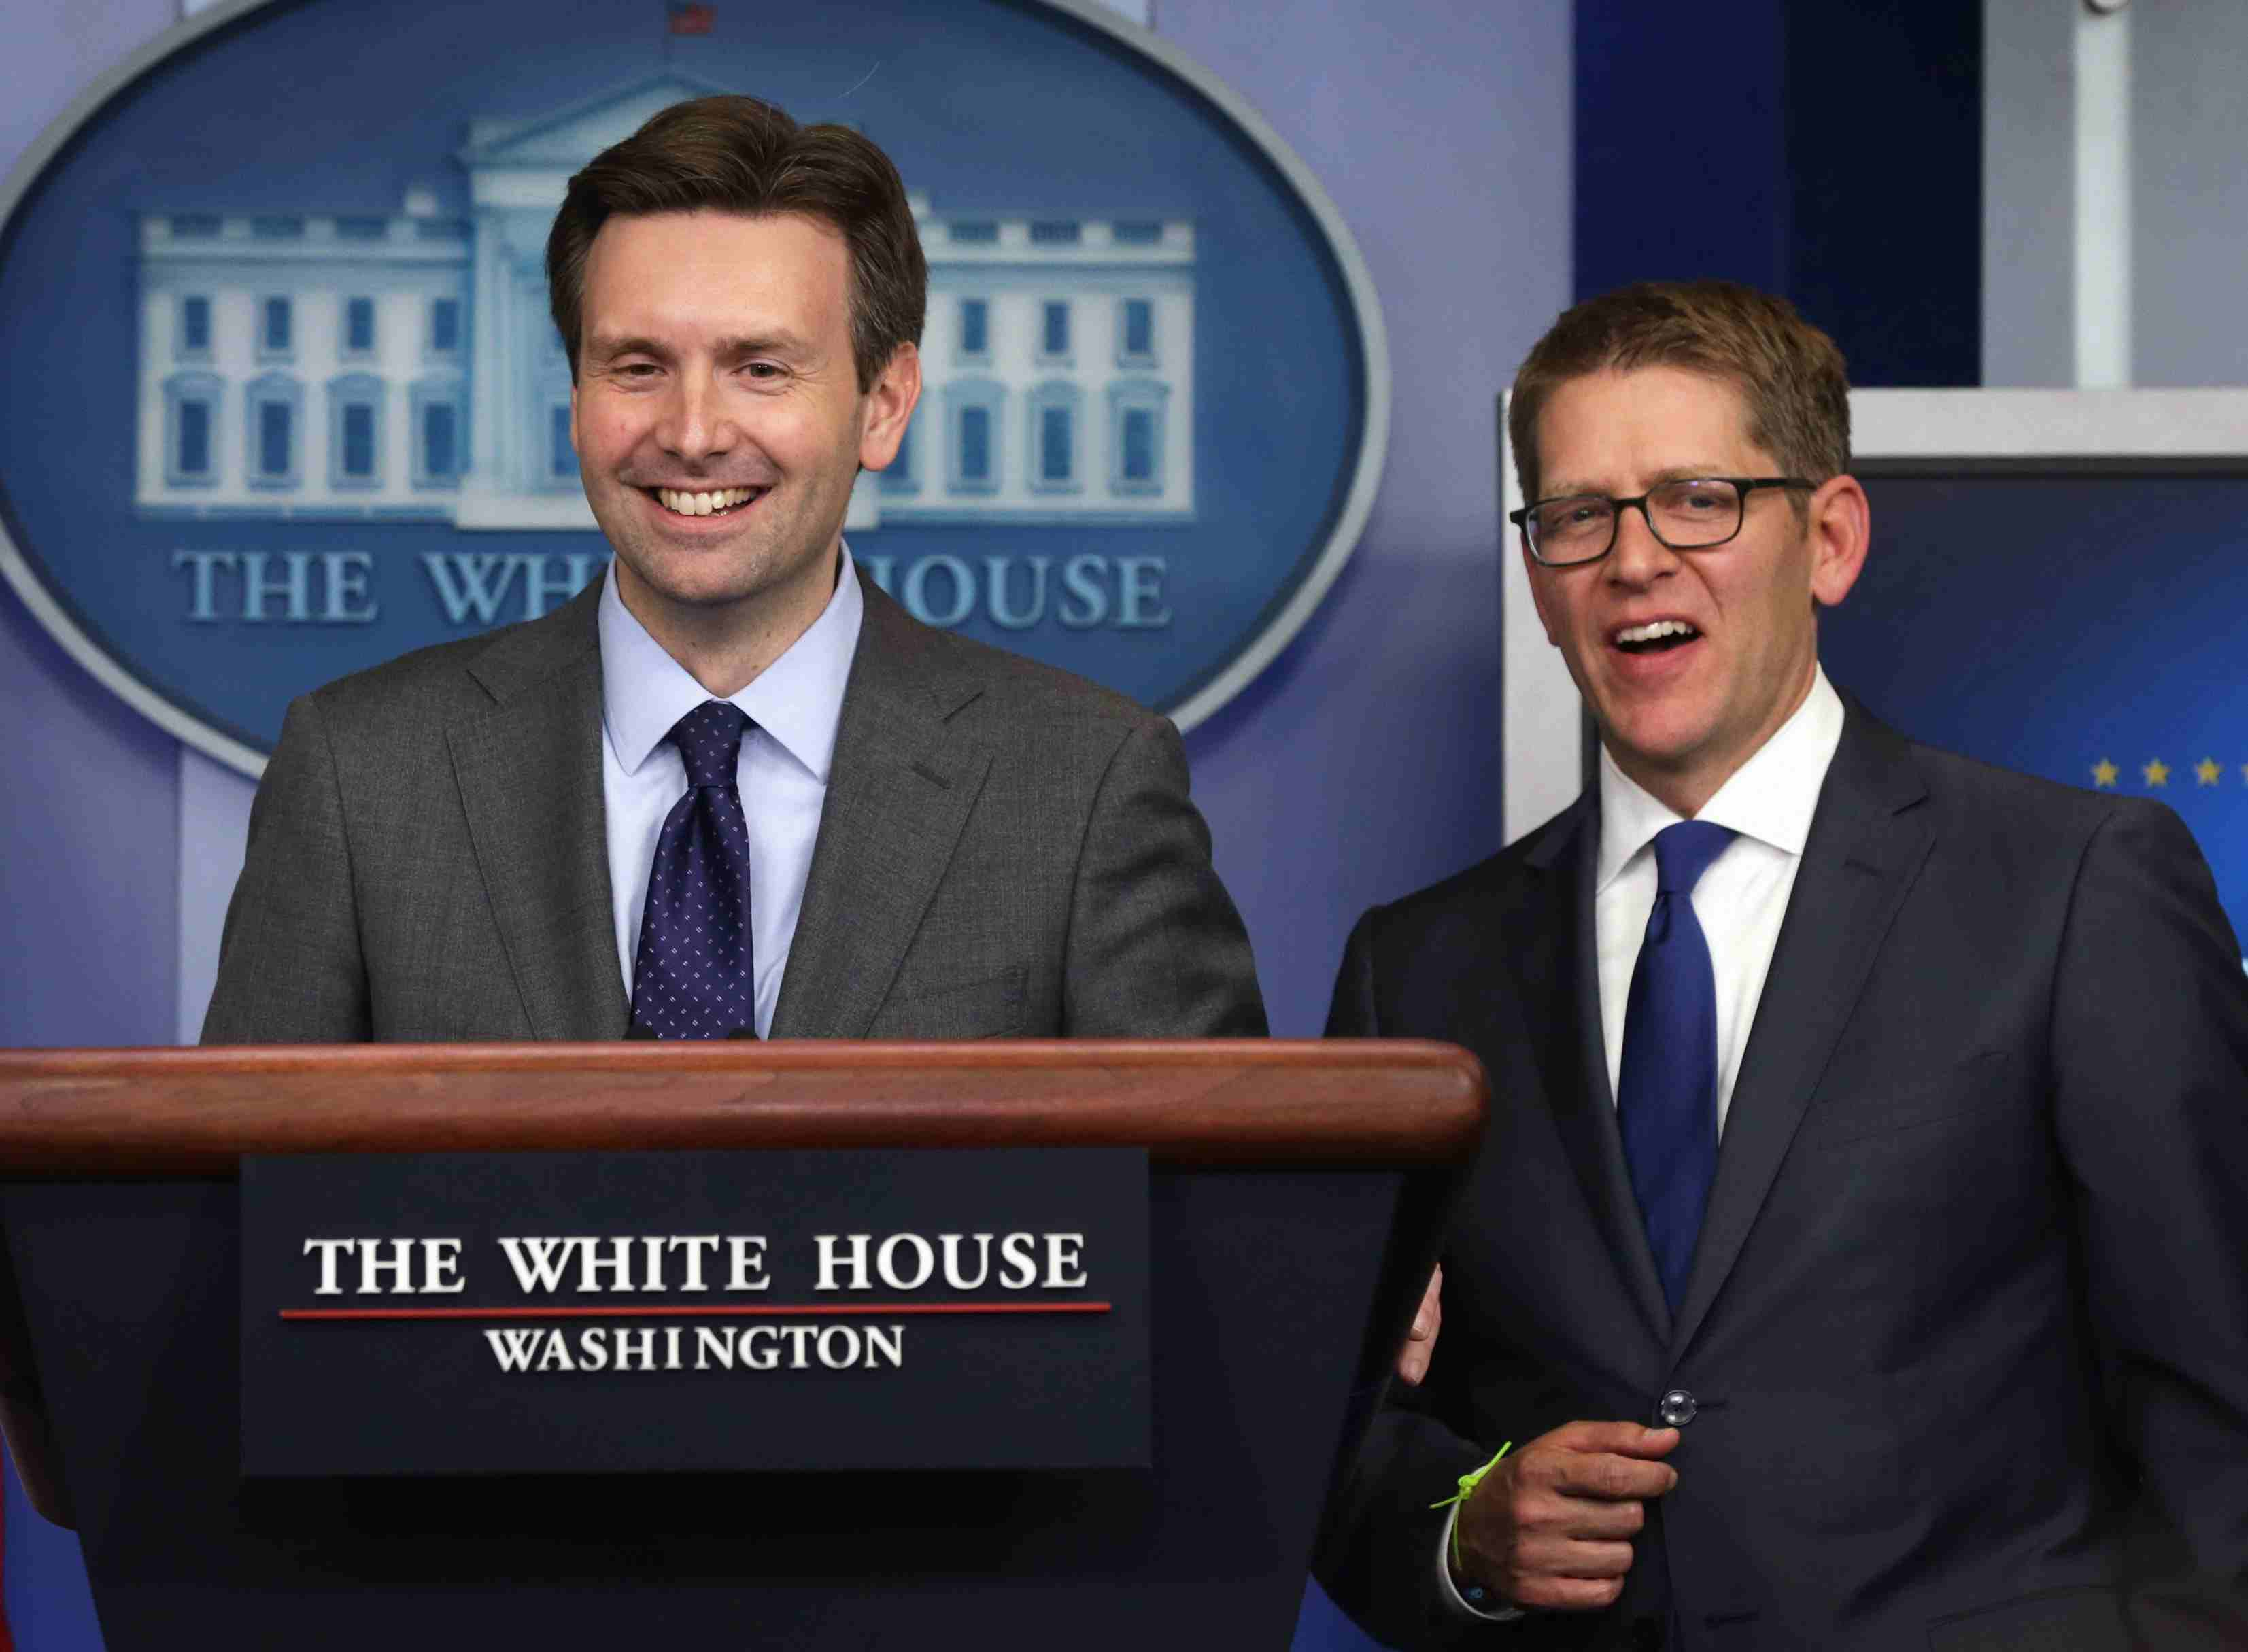 Josh Earnest left, with Jay Carney right